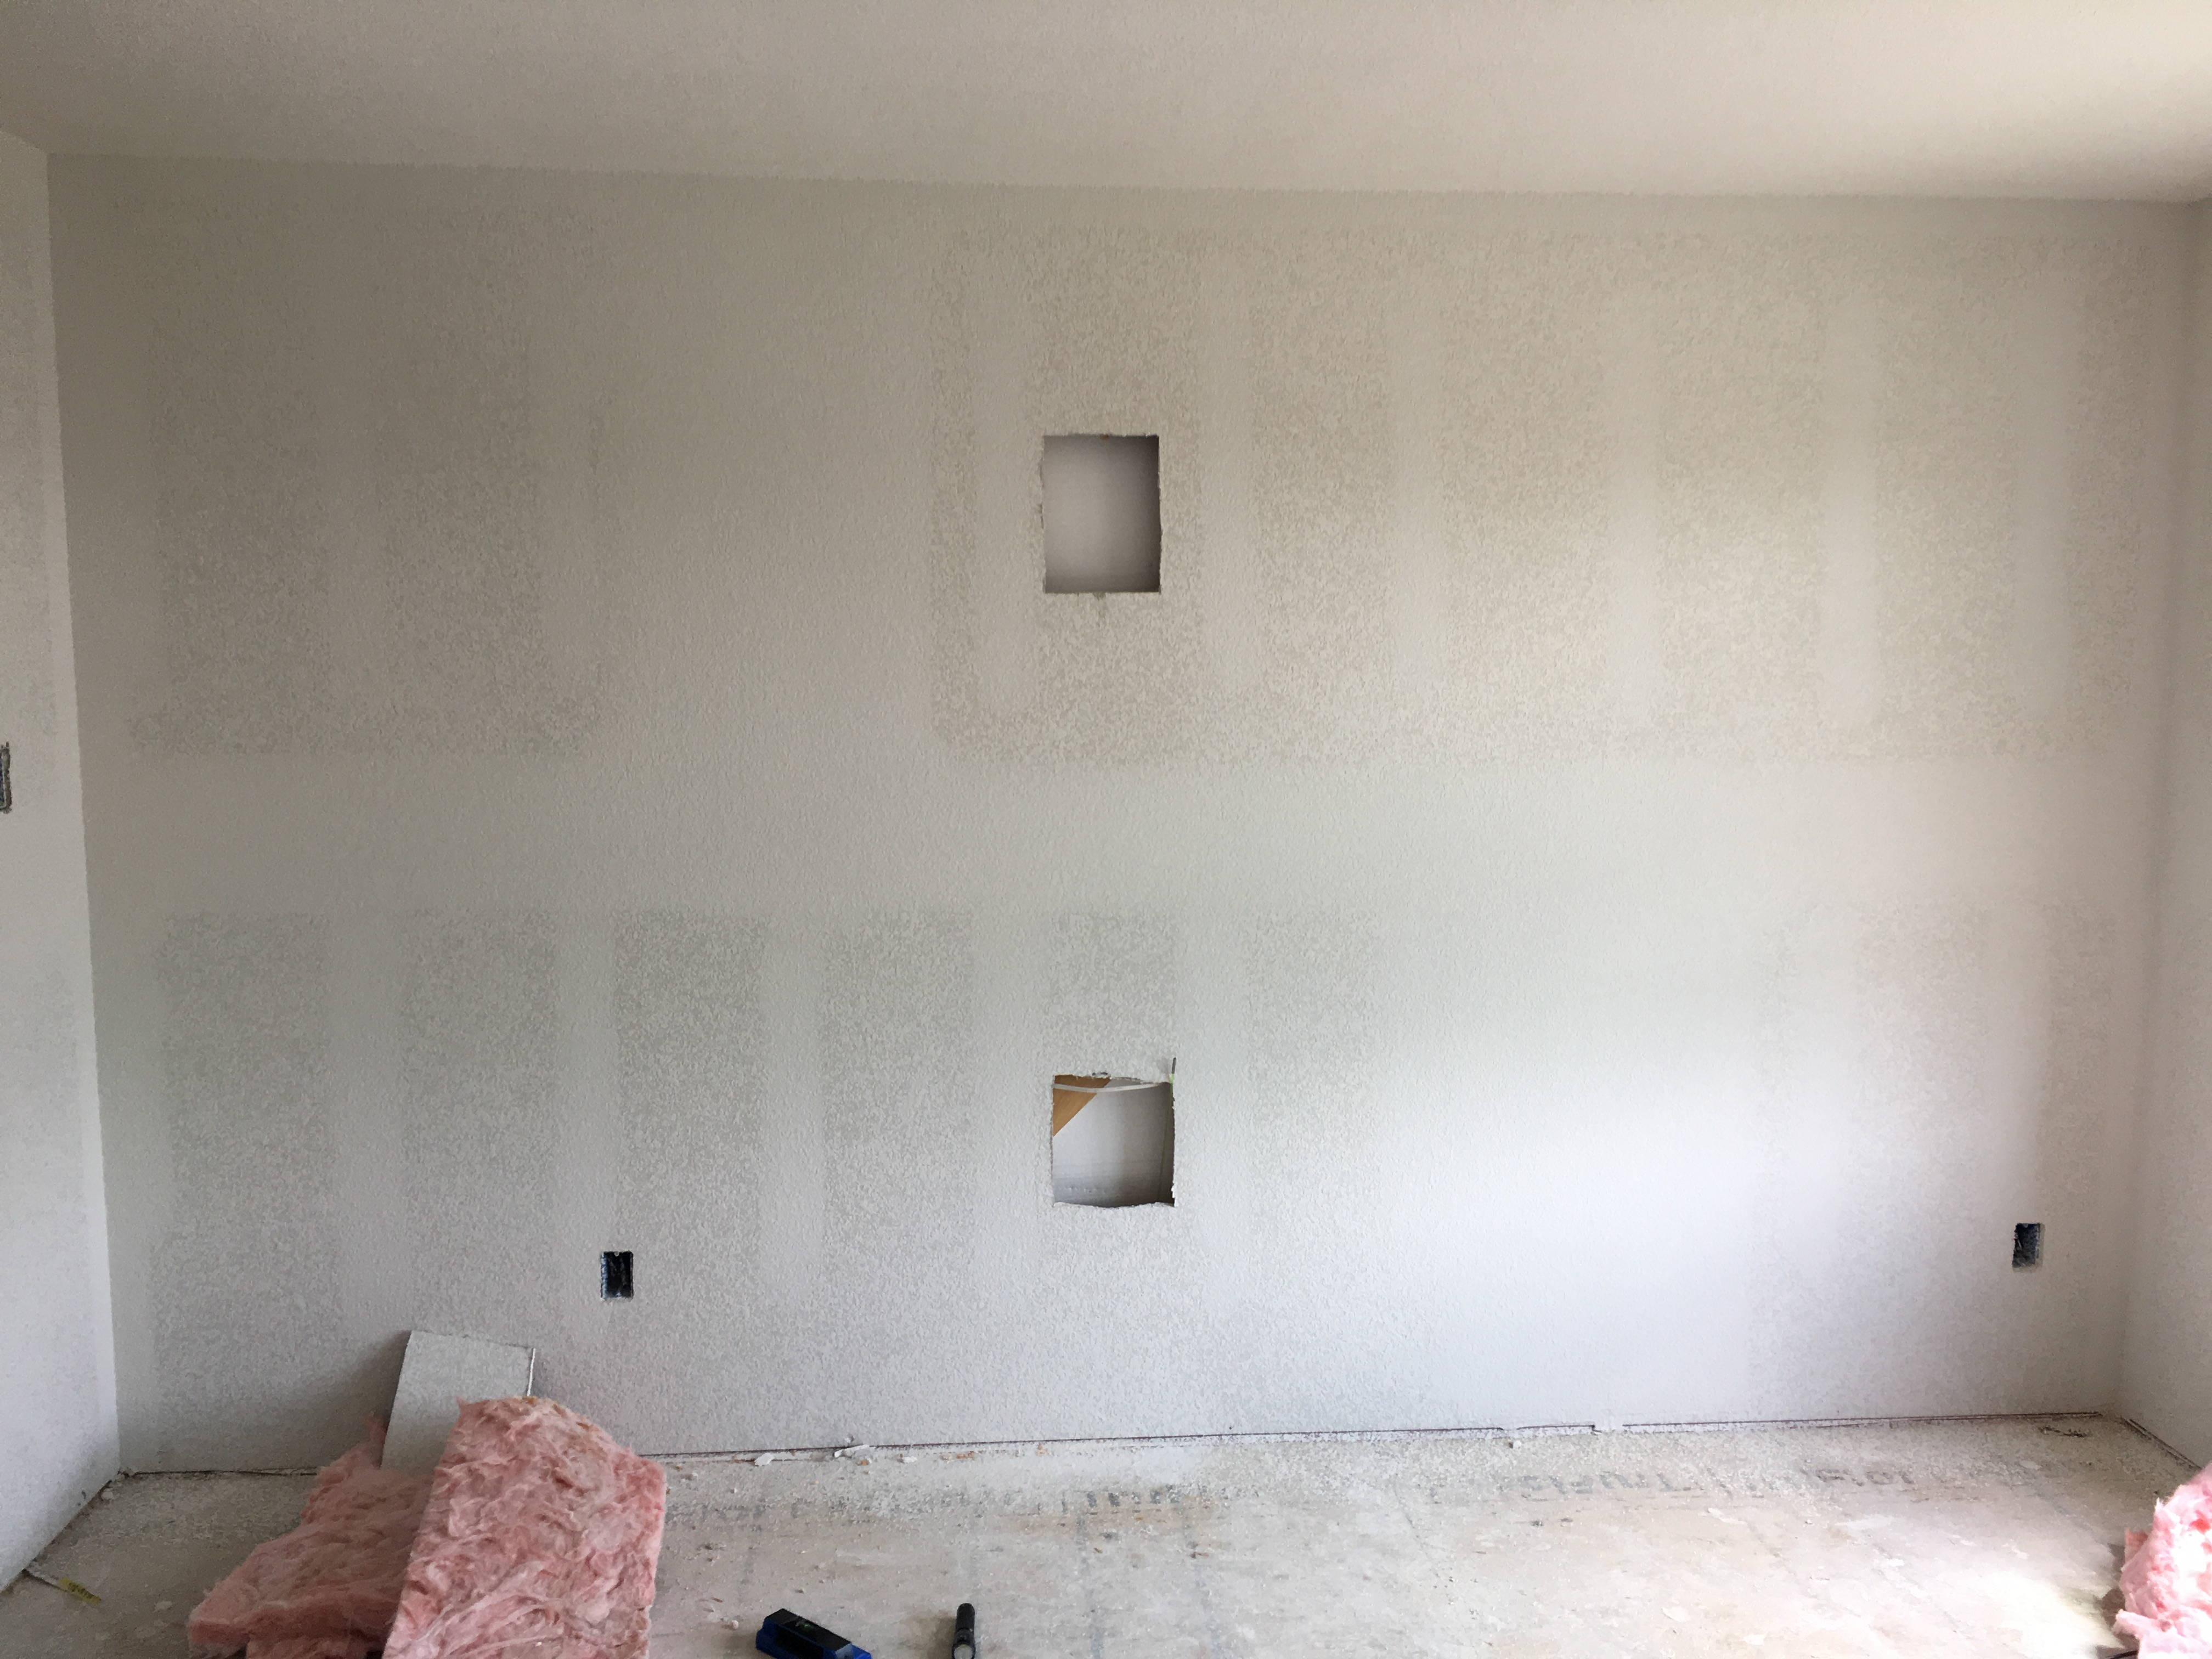 Wire Run to First Floor of the House After Walls – Audio Visual Up